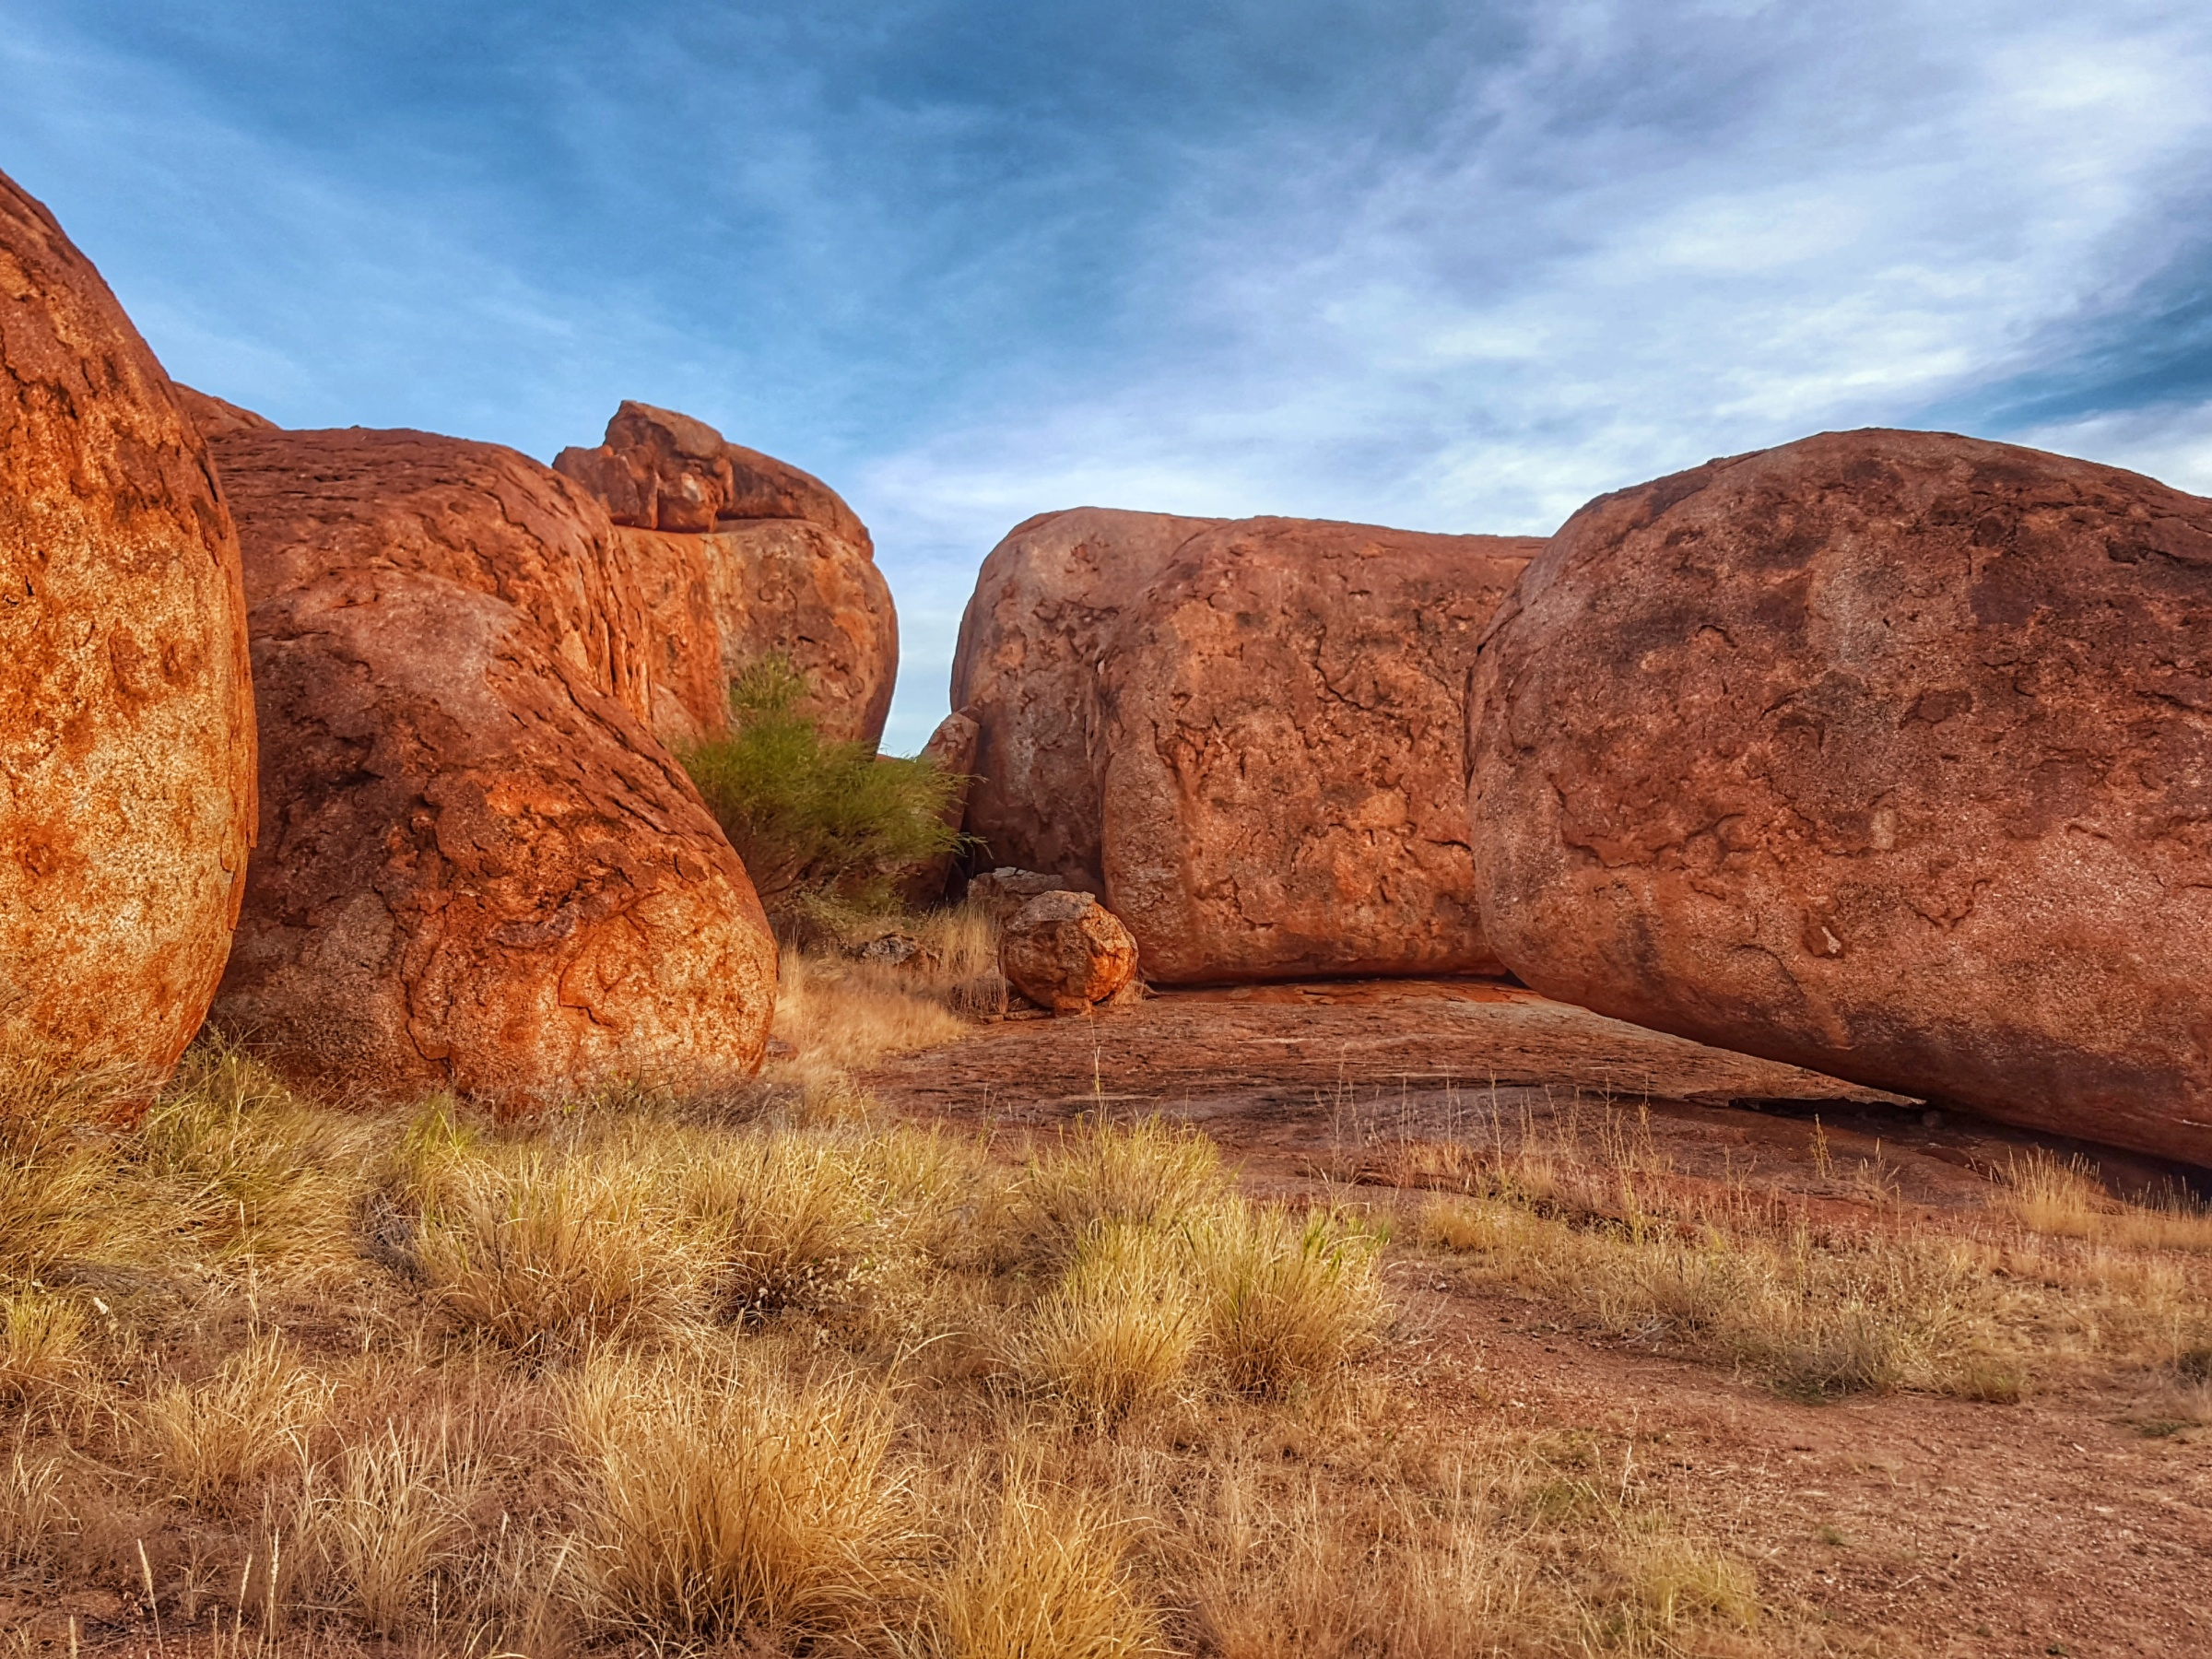 The Devil's Marbles before sunset